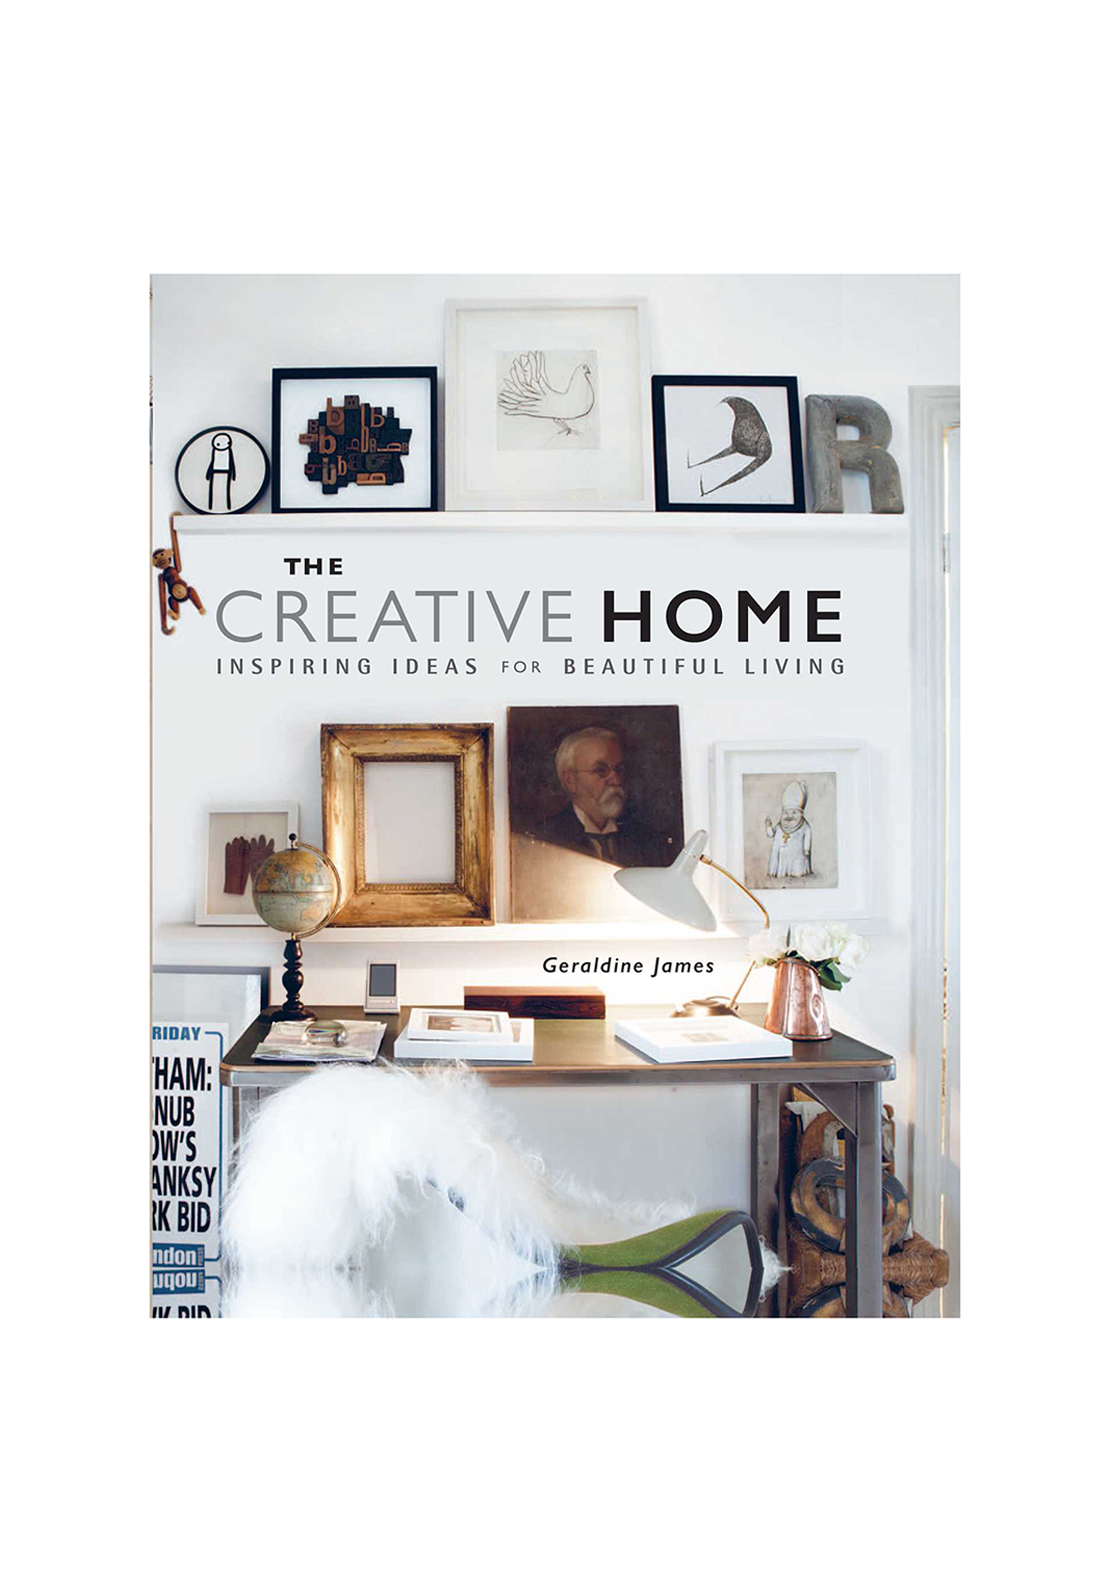 The Creative Home for Beautiful Living